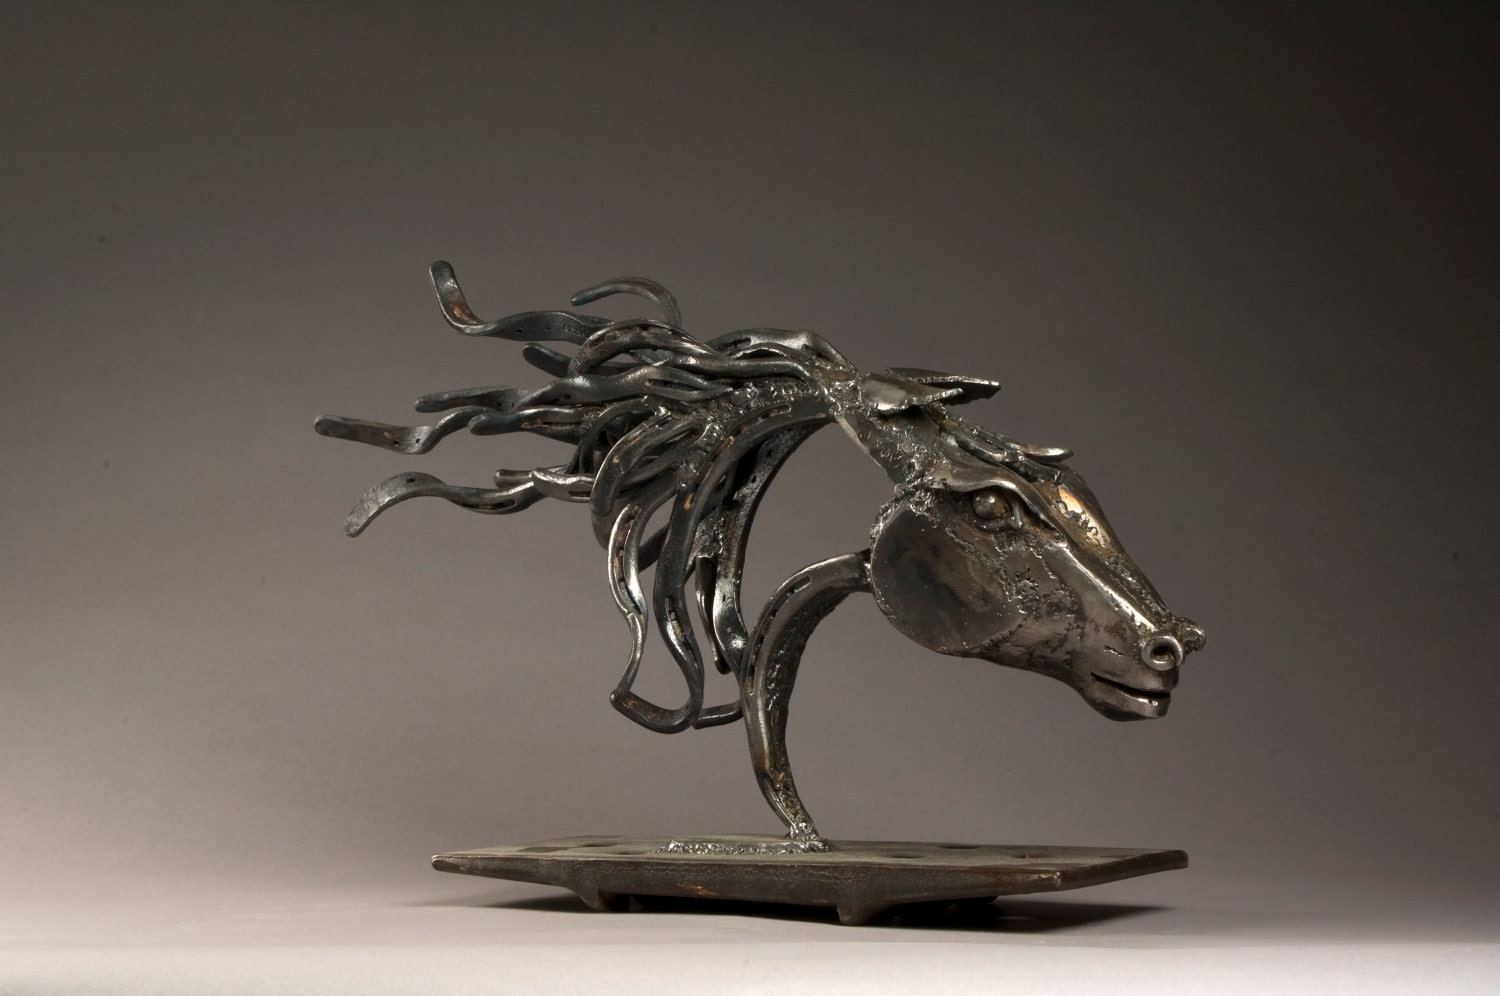 Cowboy Made Blacksmithed Steel Wild Horse Sculpture - ArtOfTheHorse